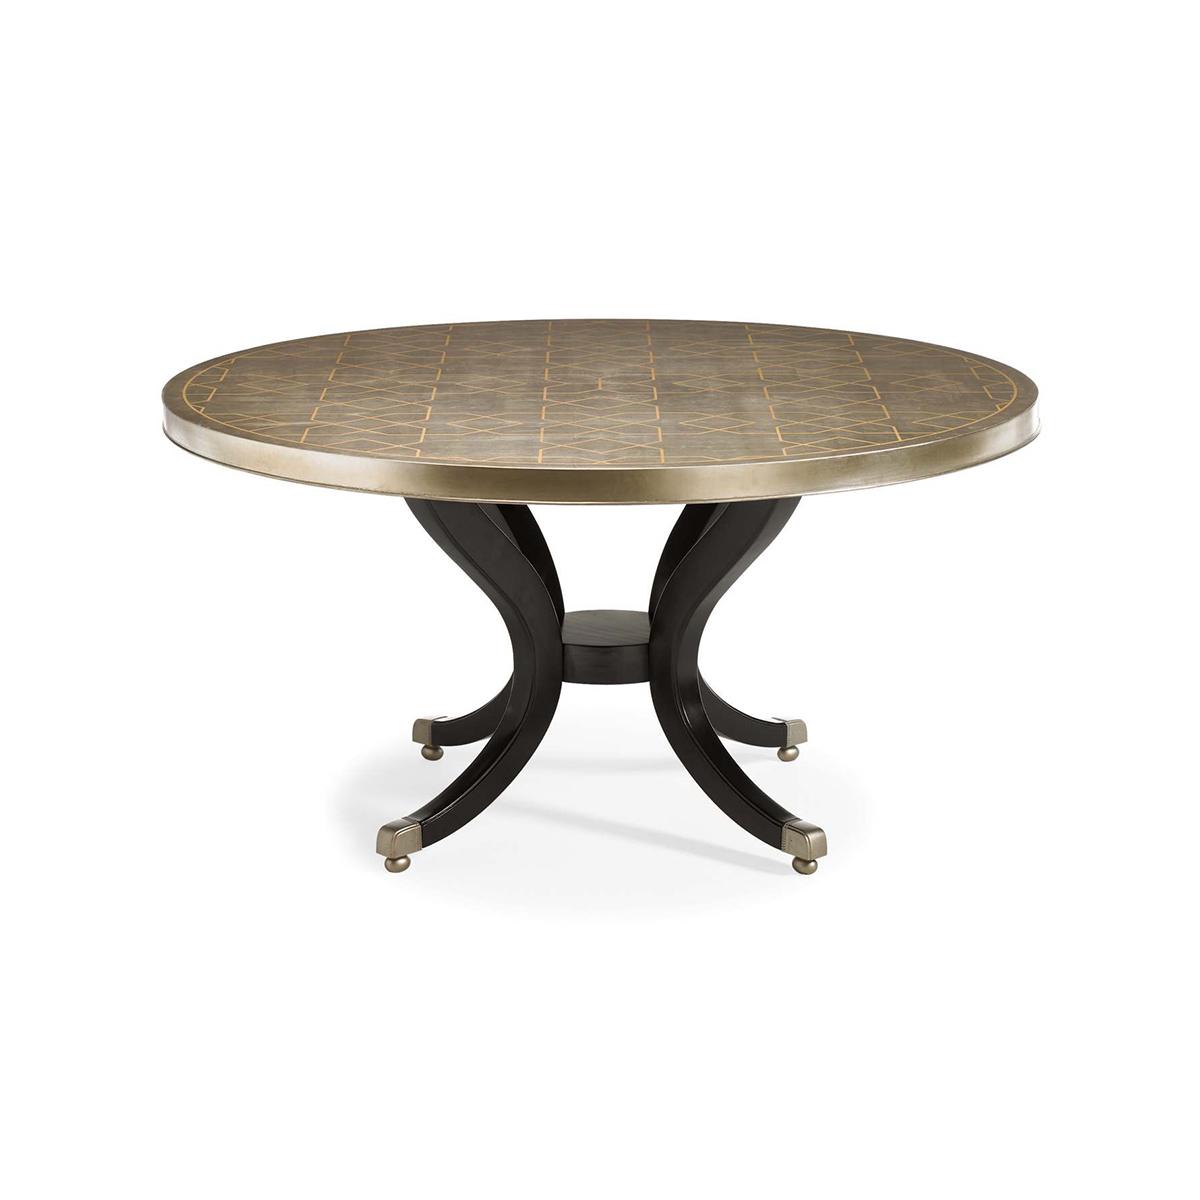 Of Attention Silver Leaf Round Dining Table With Black Pedestal Base